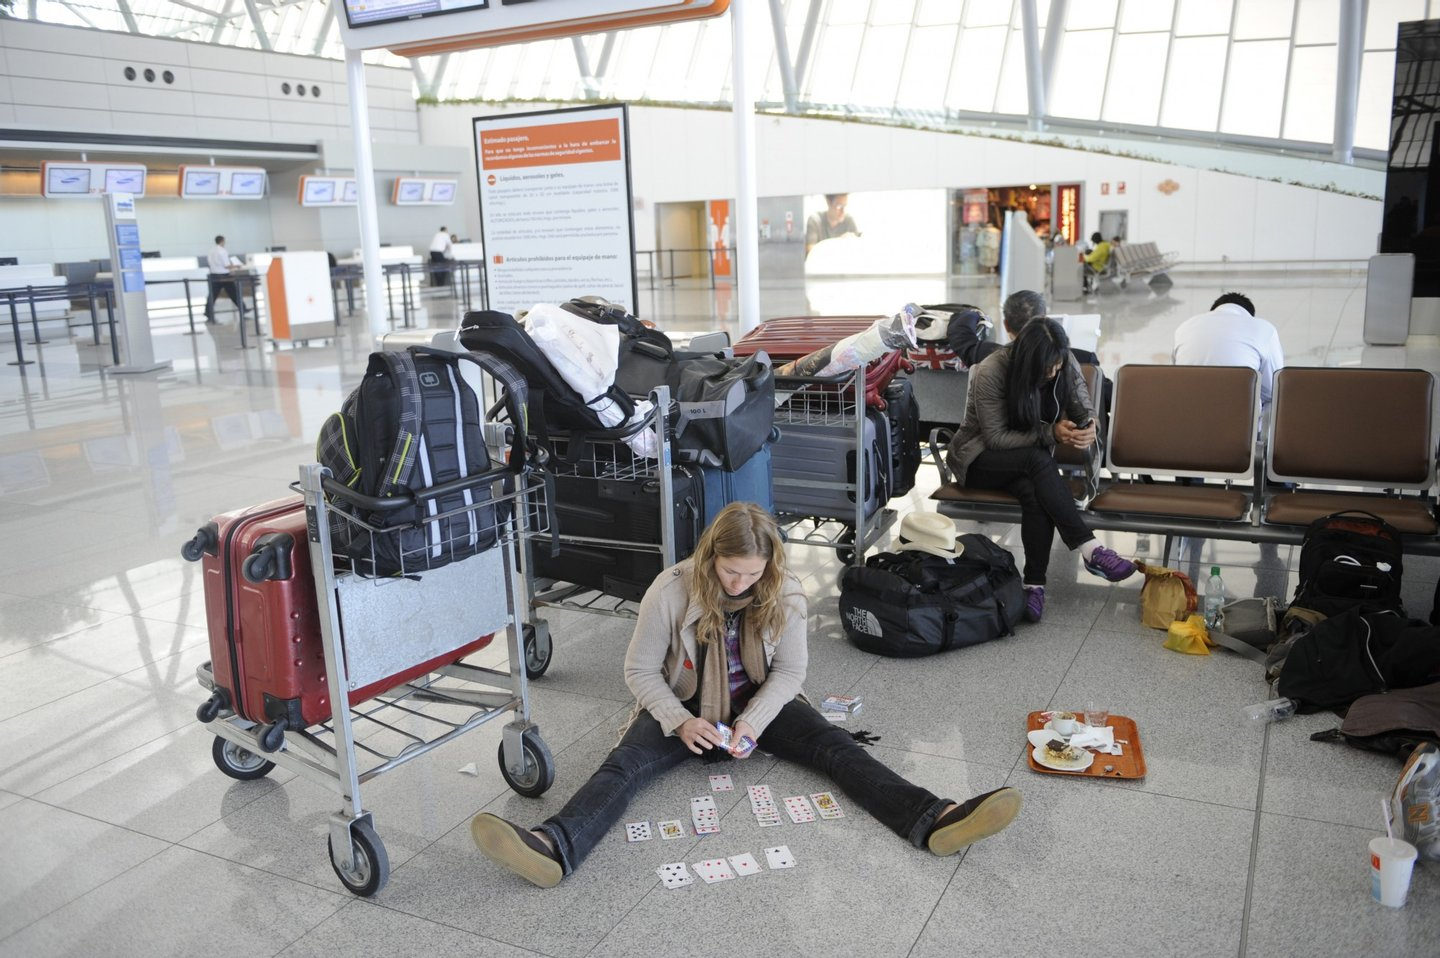 Stranded tourists await at Carrasco international airport in Montevideo, on June 10, 2011. Flights from major airports across a large section of south America were canceled Friday as ash from Chile's Puyehue volcano spread across the region, nearly one week after the volcano erupted for the first time in half a century. Flights from airports in Buenos Aires, Montevideo, and southern Brazilian cities were grounded due to clouds of ash high in the sky. Flights from airports in Buenos Aires, Montevideo, and southern Brazilian cities were grounded due to clouds of ash high in the sky. AFP PHOTO/Miguel ROJO (Photo credit should read MIGUEL ROJO/AFP/Getty Images)